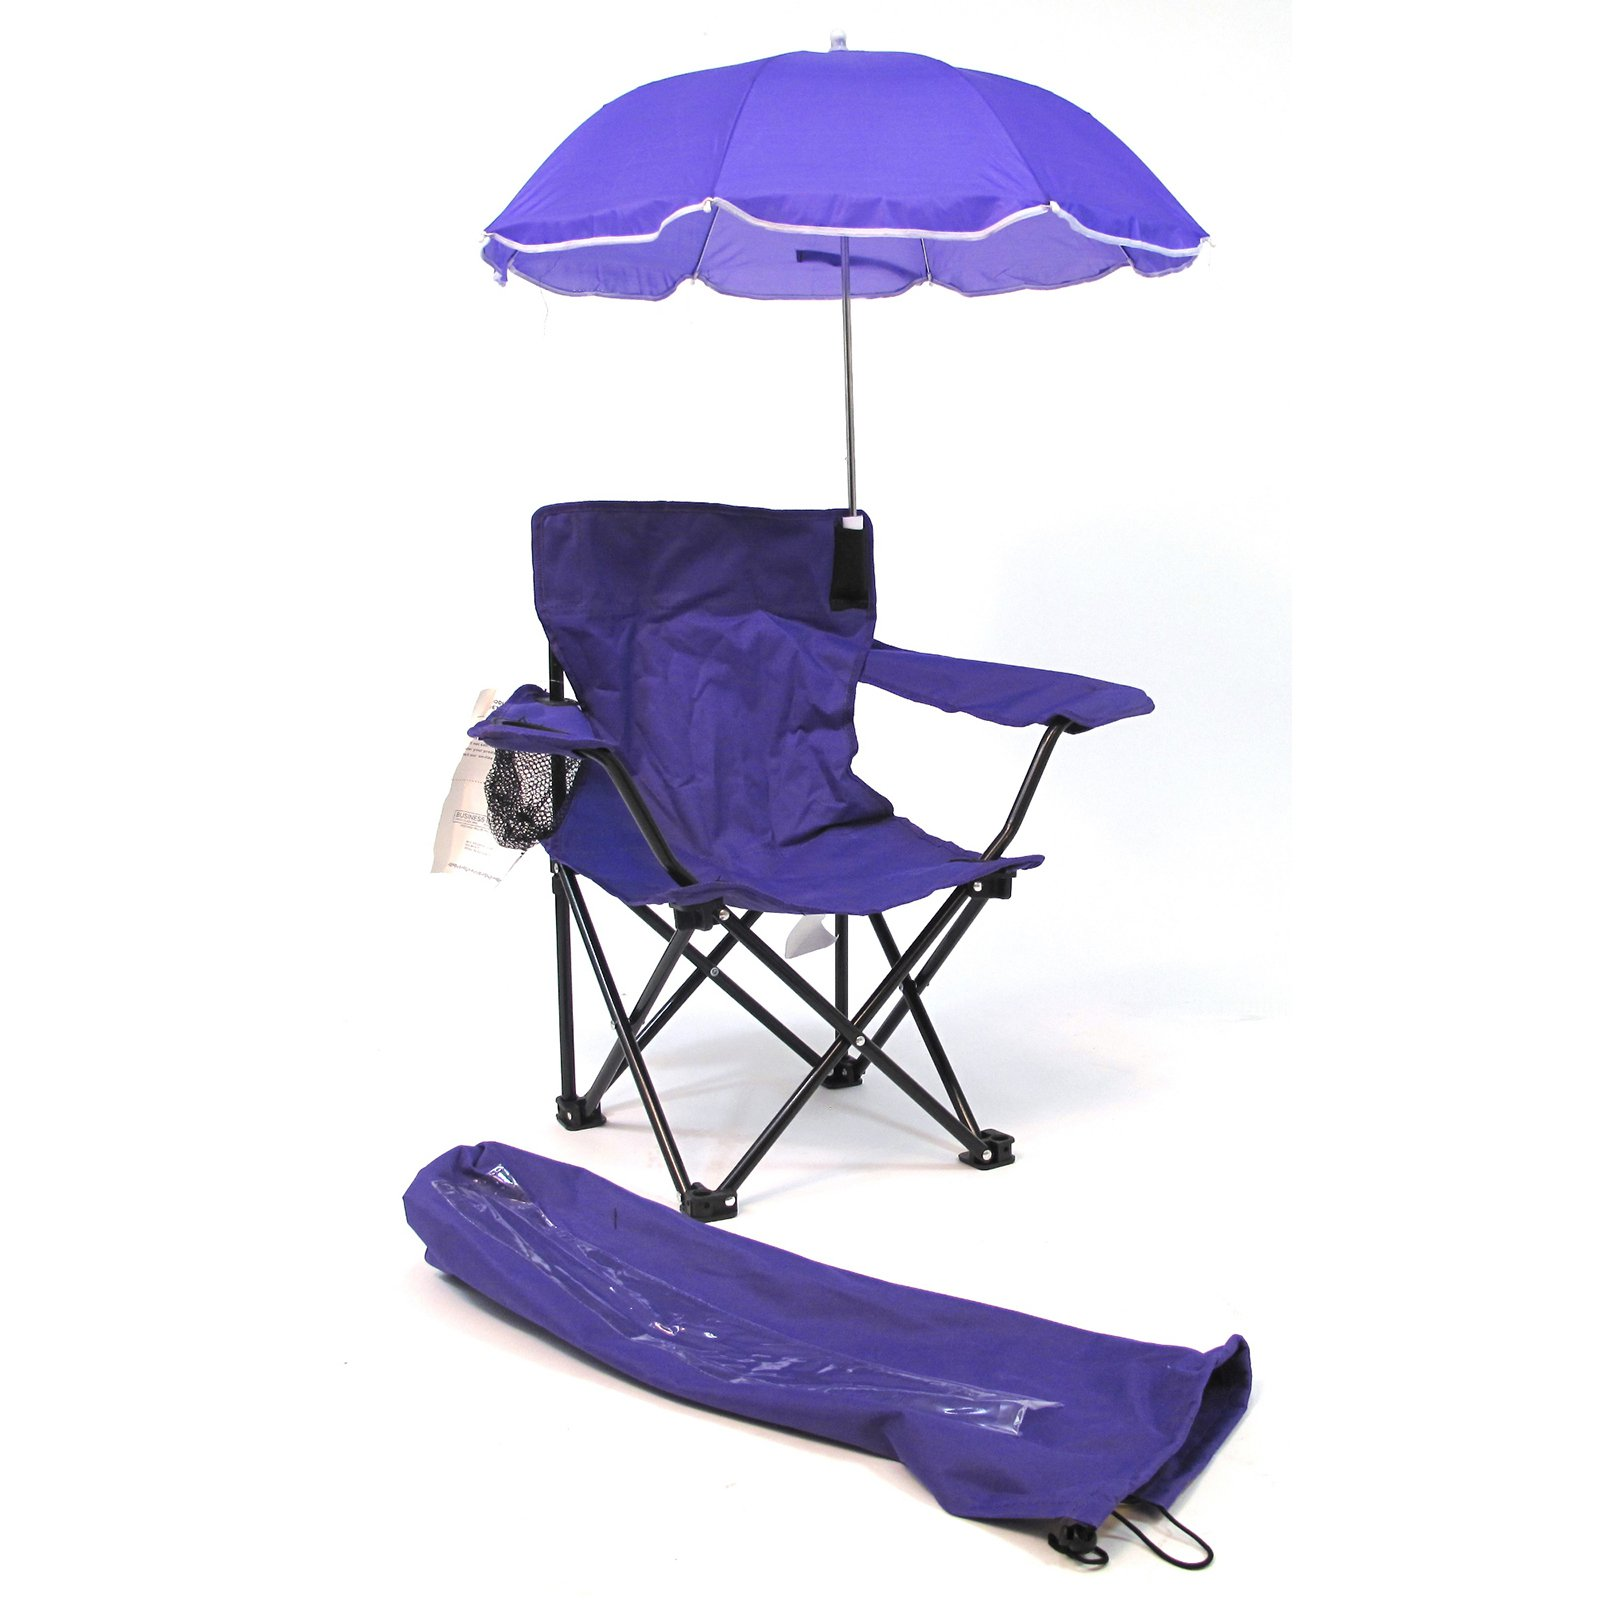 Camping chairs with umbrella - Camping Chairs With Umbrella 19